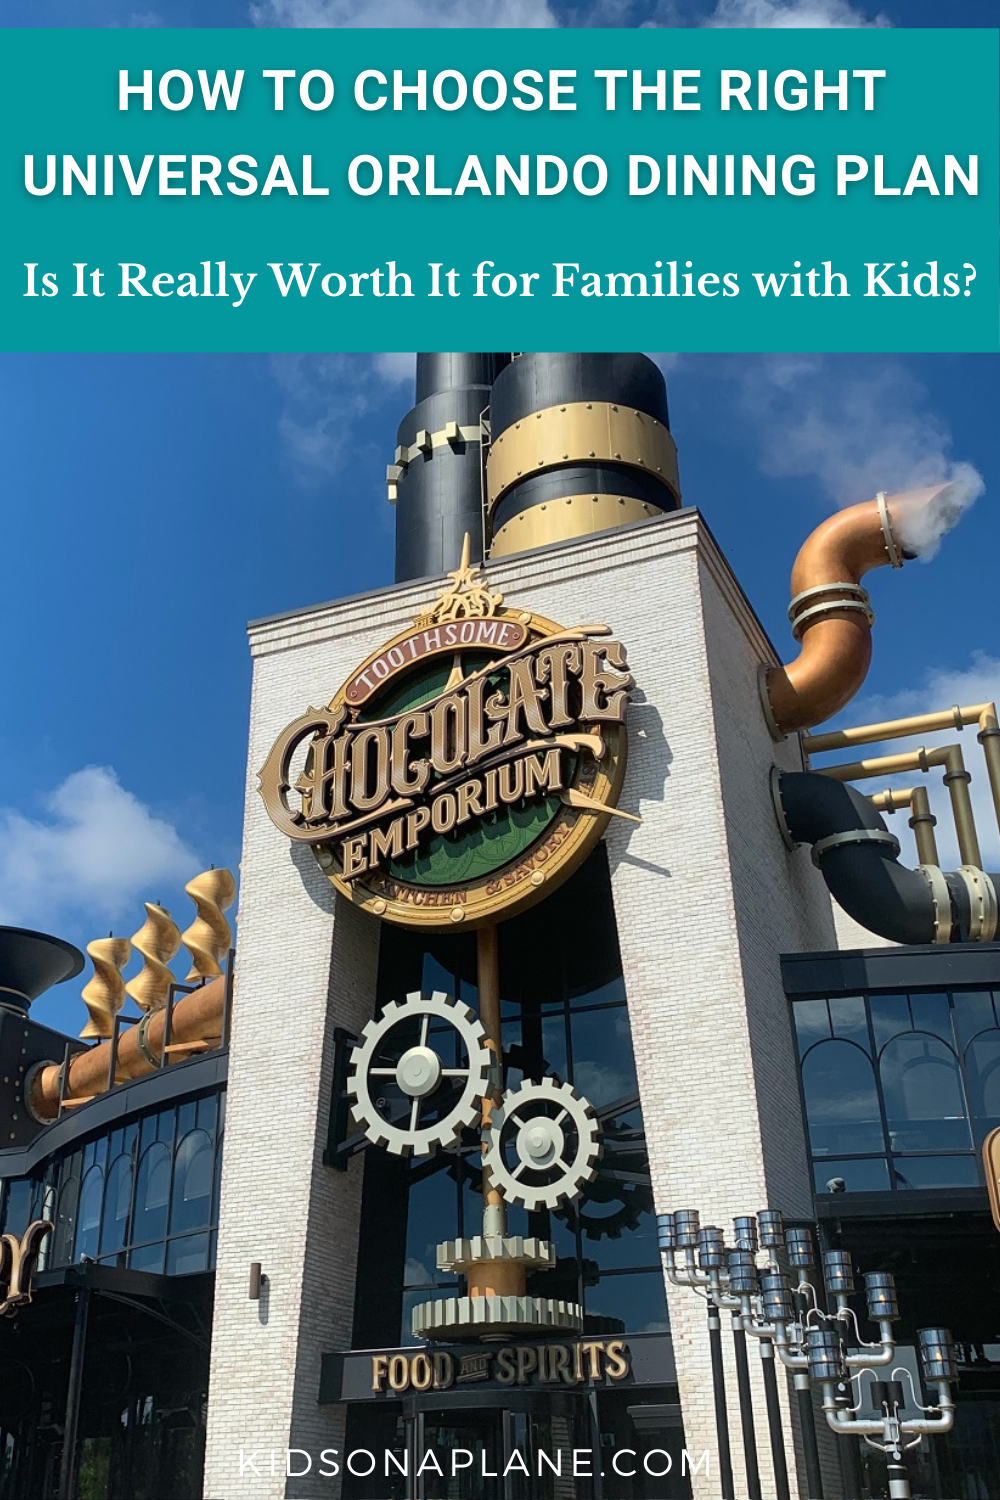 Is the Universal Orlando Dining Plan Worth It - Tips for Choosing the Best One for Families with Kids